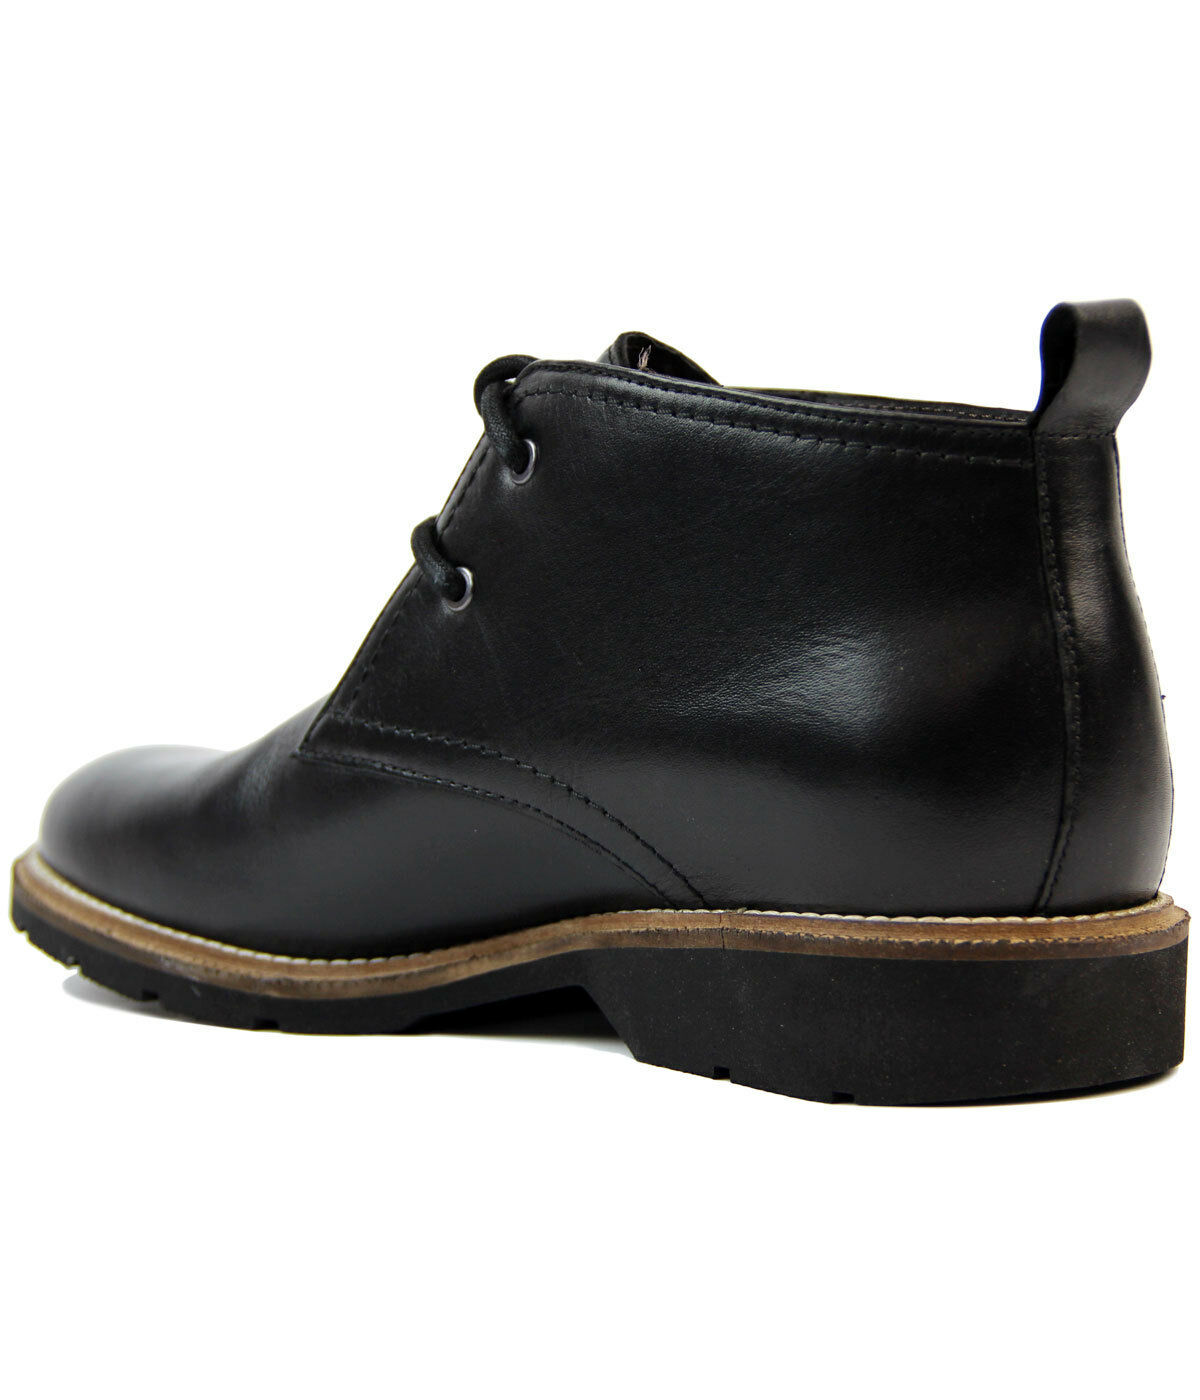 NEW  Herren RETRO LEATHER CHUKKA MEMORY Stiefel BLACK FLEXI SOLE MEMORY CHUKKA FOAM SOCK M9521A 16C d5f92d